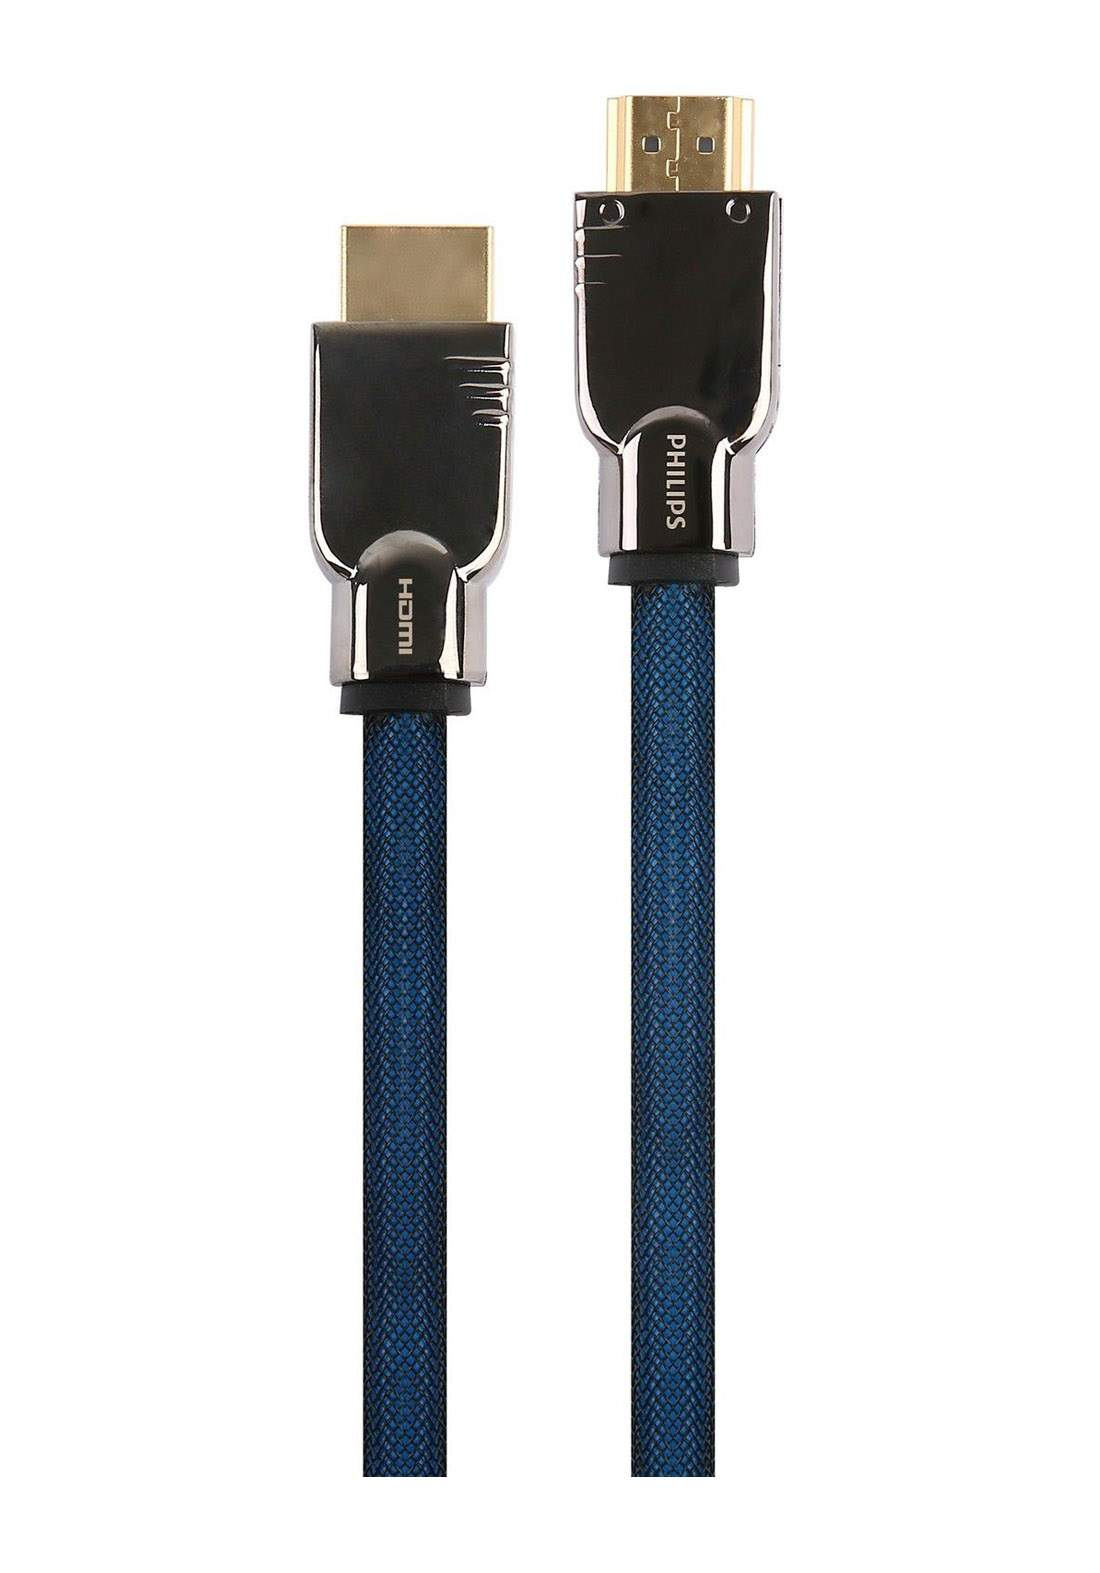 Philips SWL6120K/93D-8 High Speed 4K Ultra HD HDMI Cable 2 m - Blue كابل